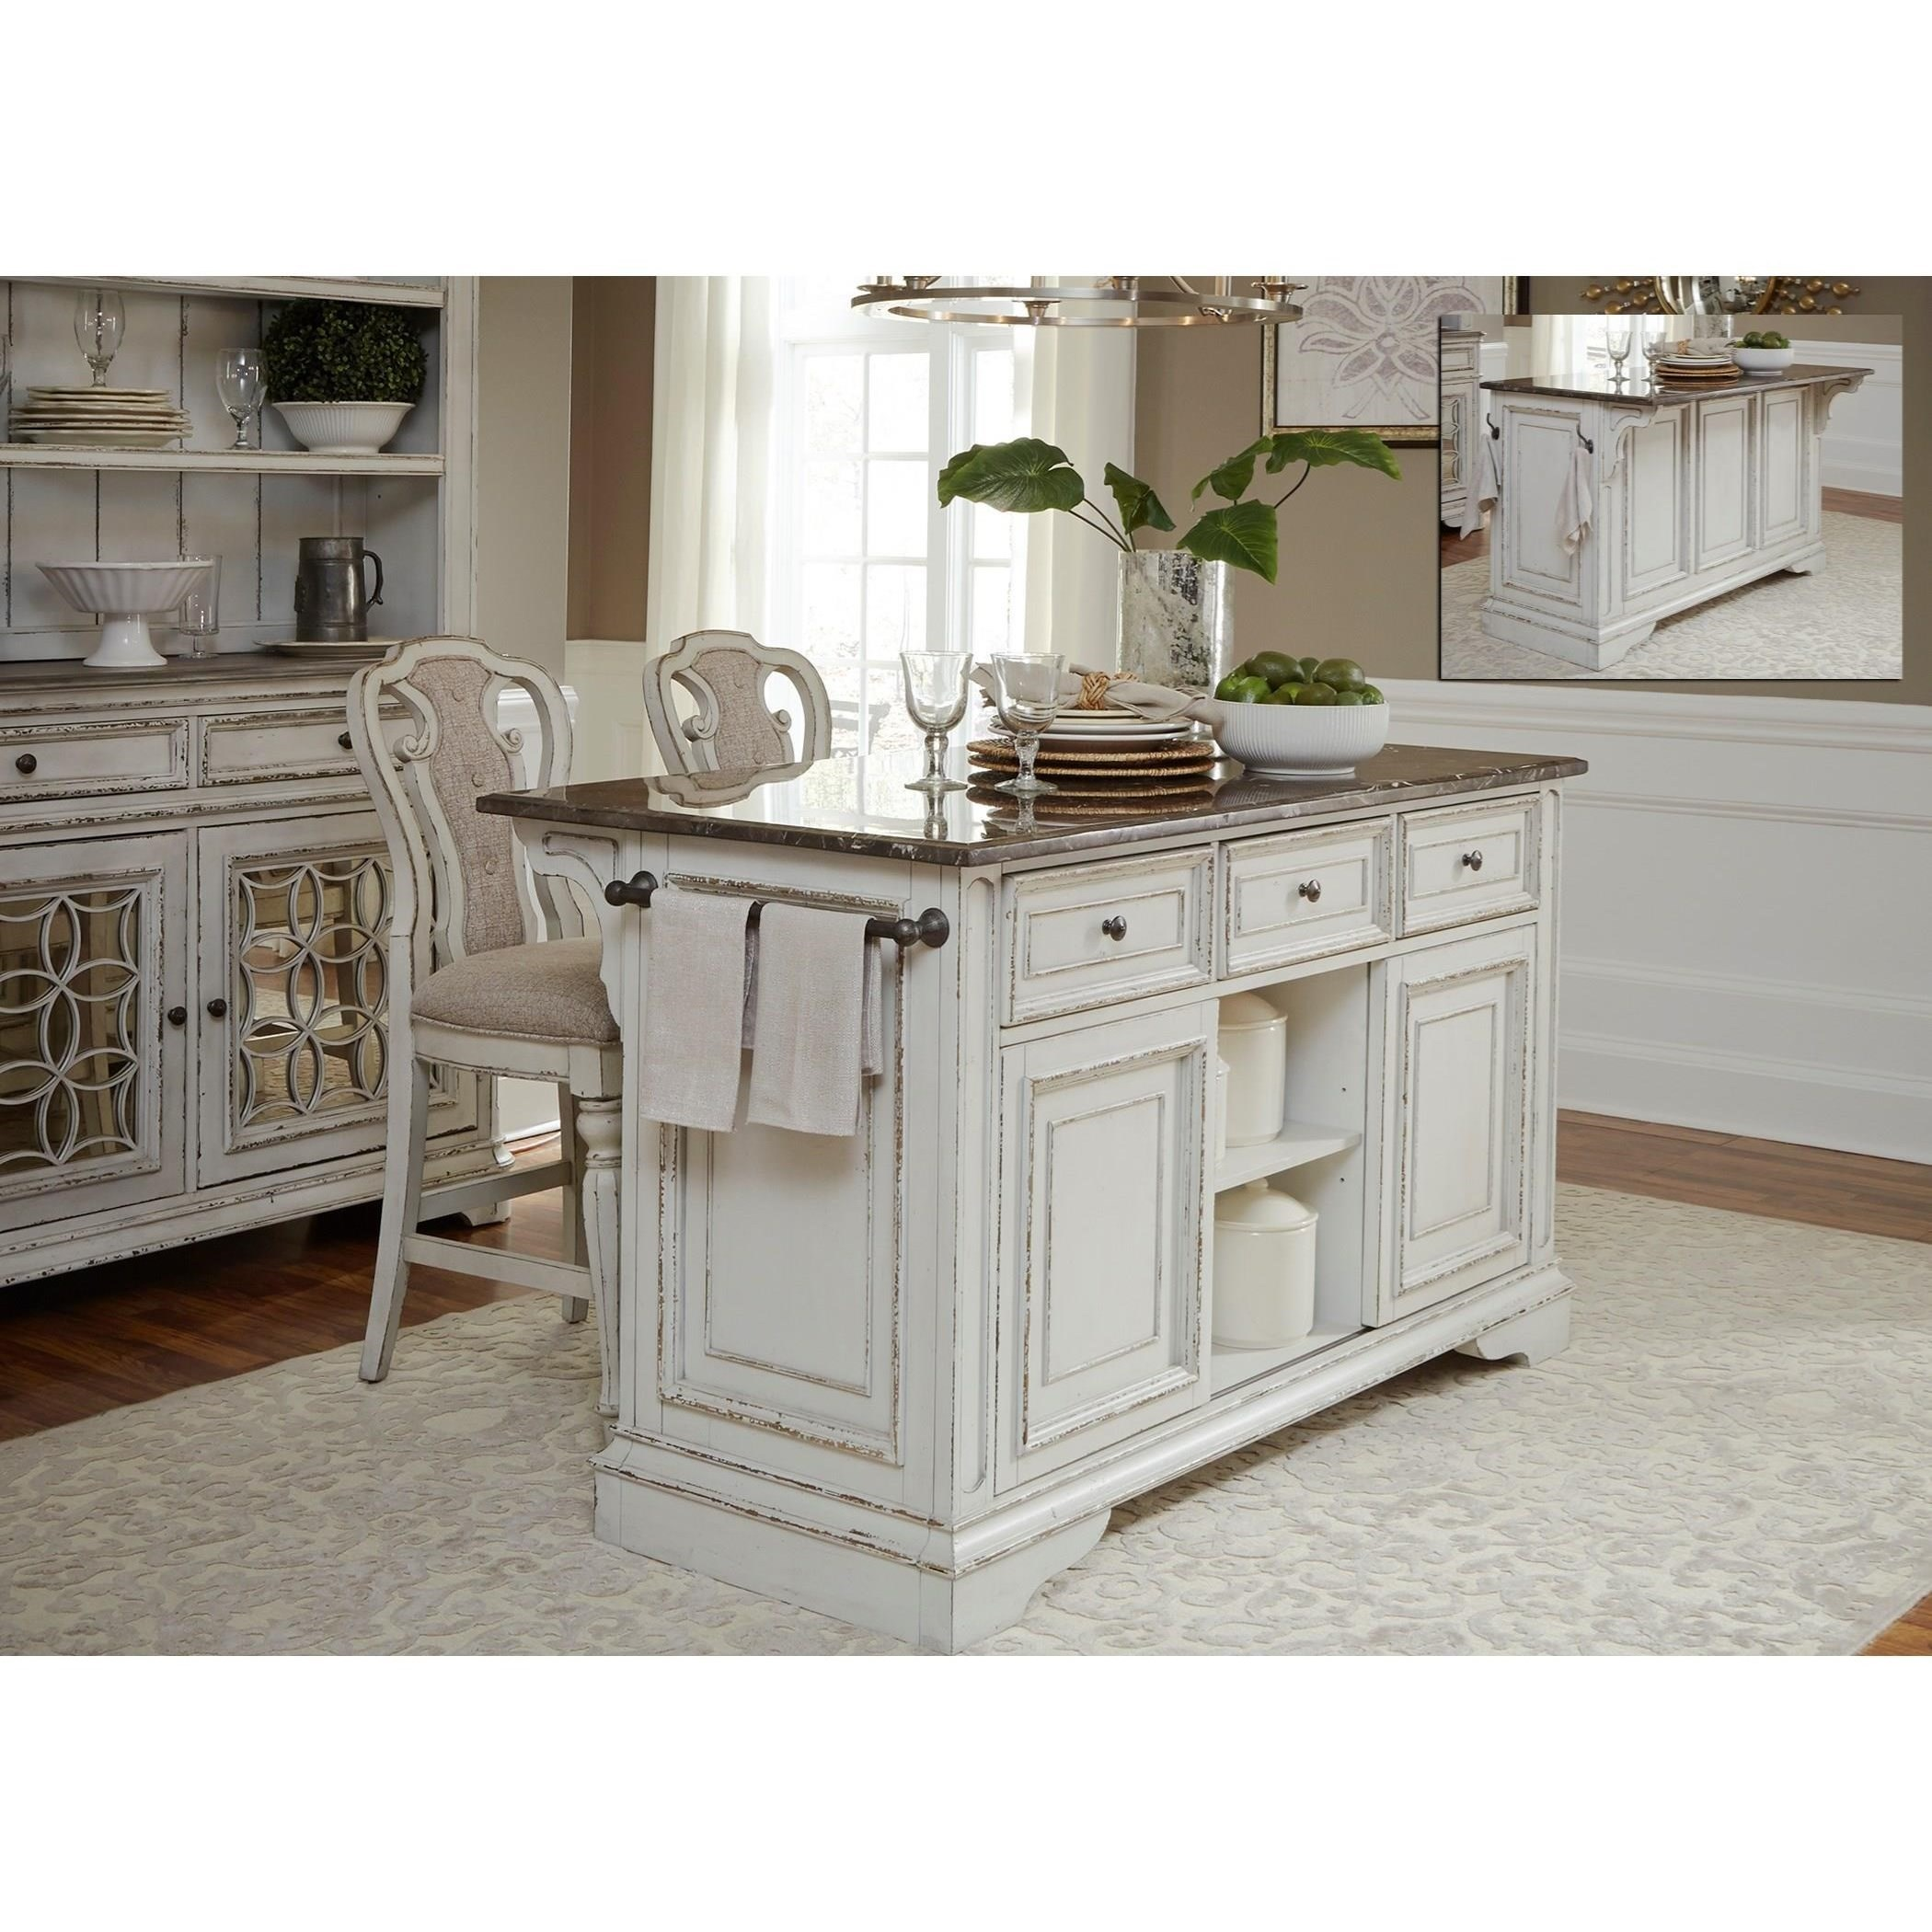 Countertop Dining Room Sets: Liberty Furniture Magnolia Manor Dining 244-IT6032G